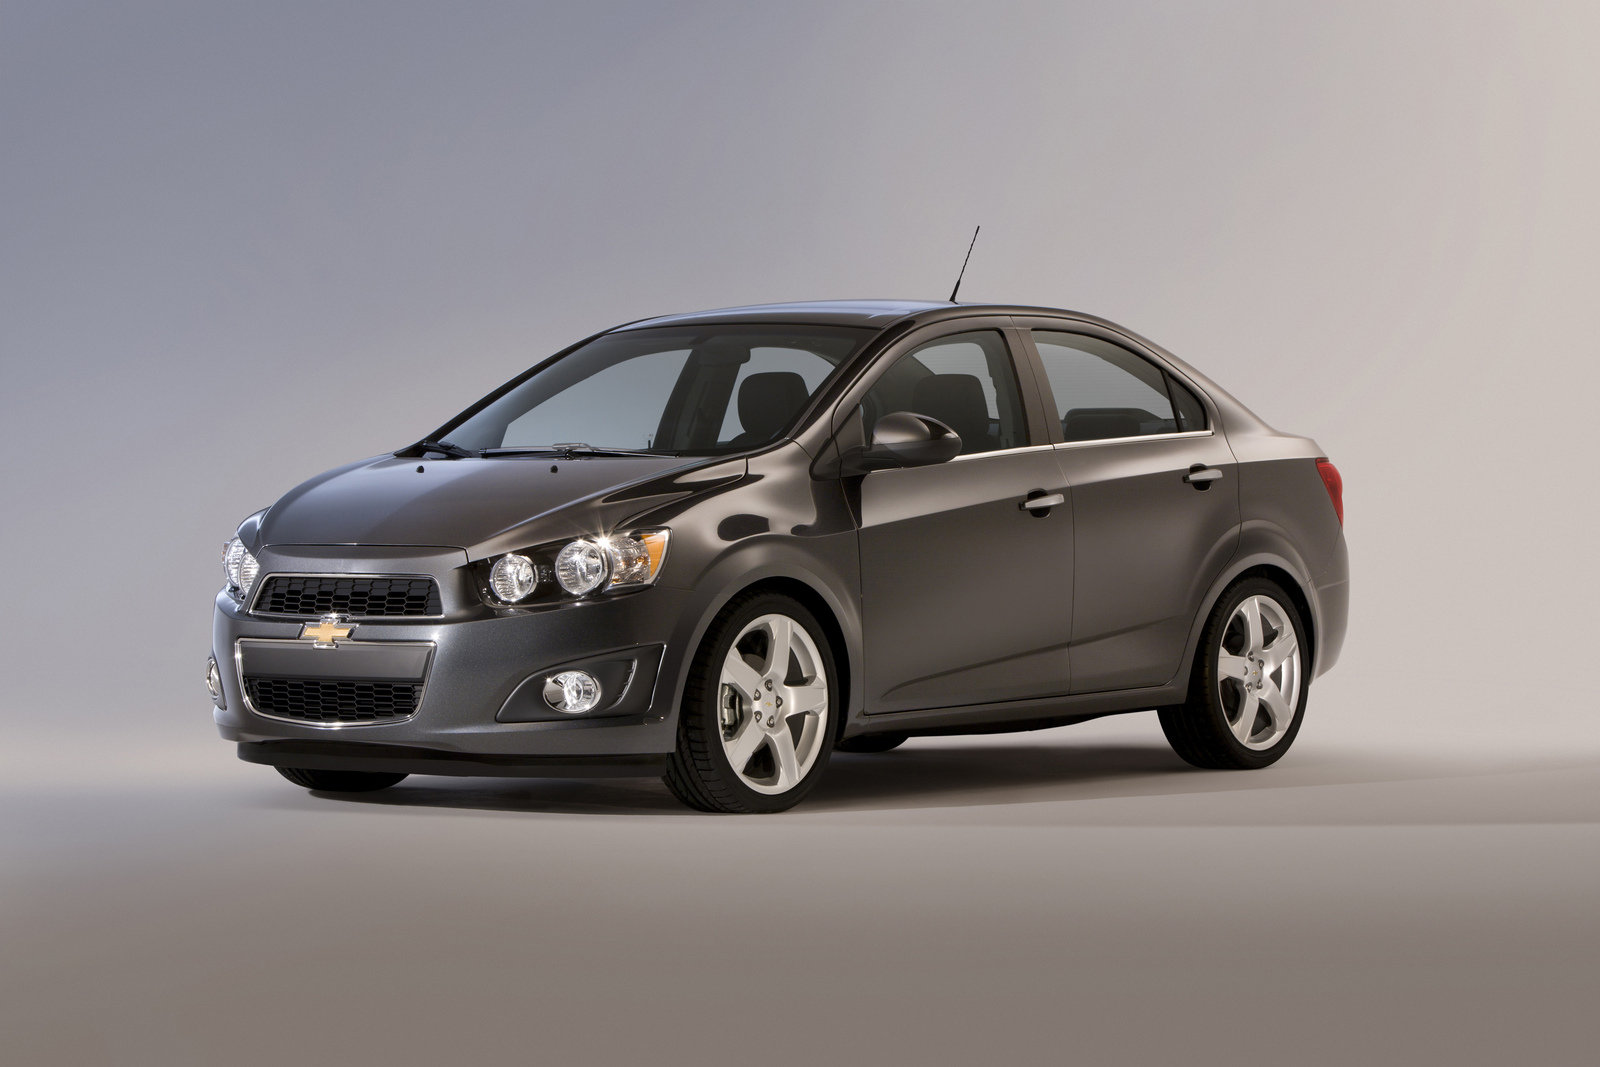 All Chevy chevy 2014 cars : 2014 Chevrolet Sonic Review - Top Speed